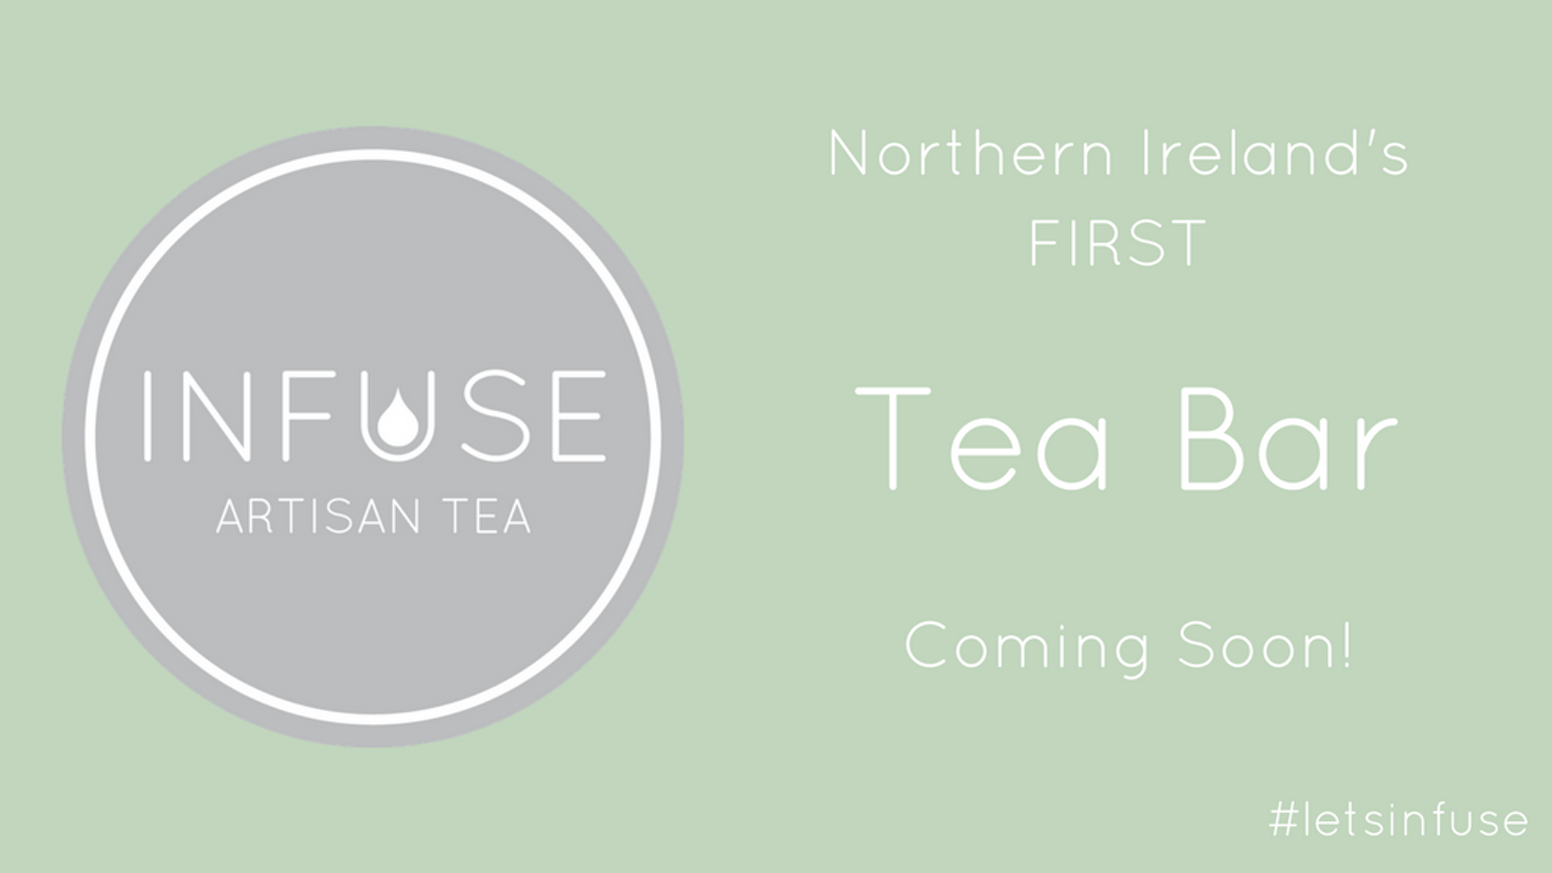 We are launching Northern Ireland's very first Tea Bar. Be part of the journey, explore and enjoy the art of tea!